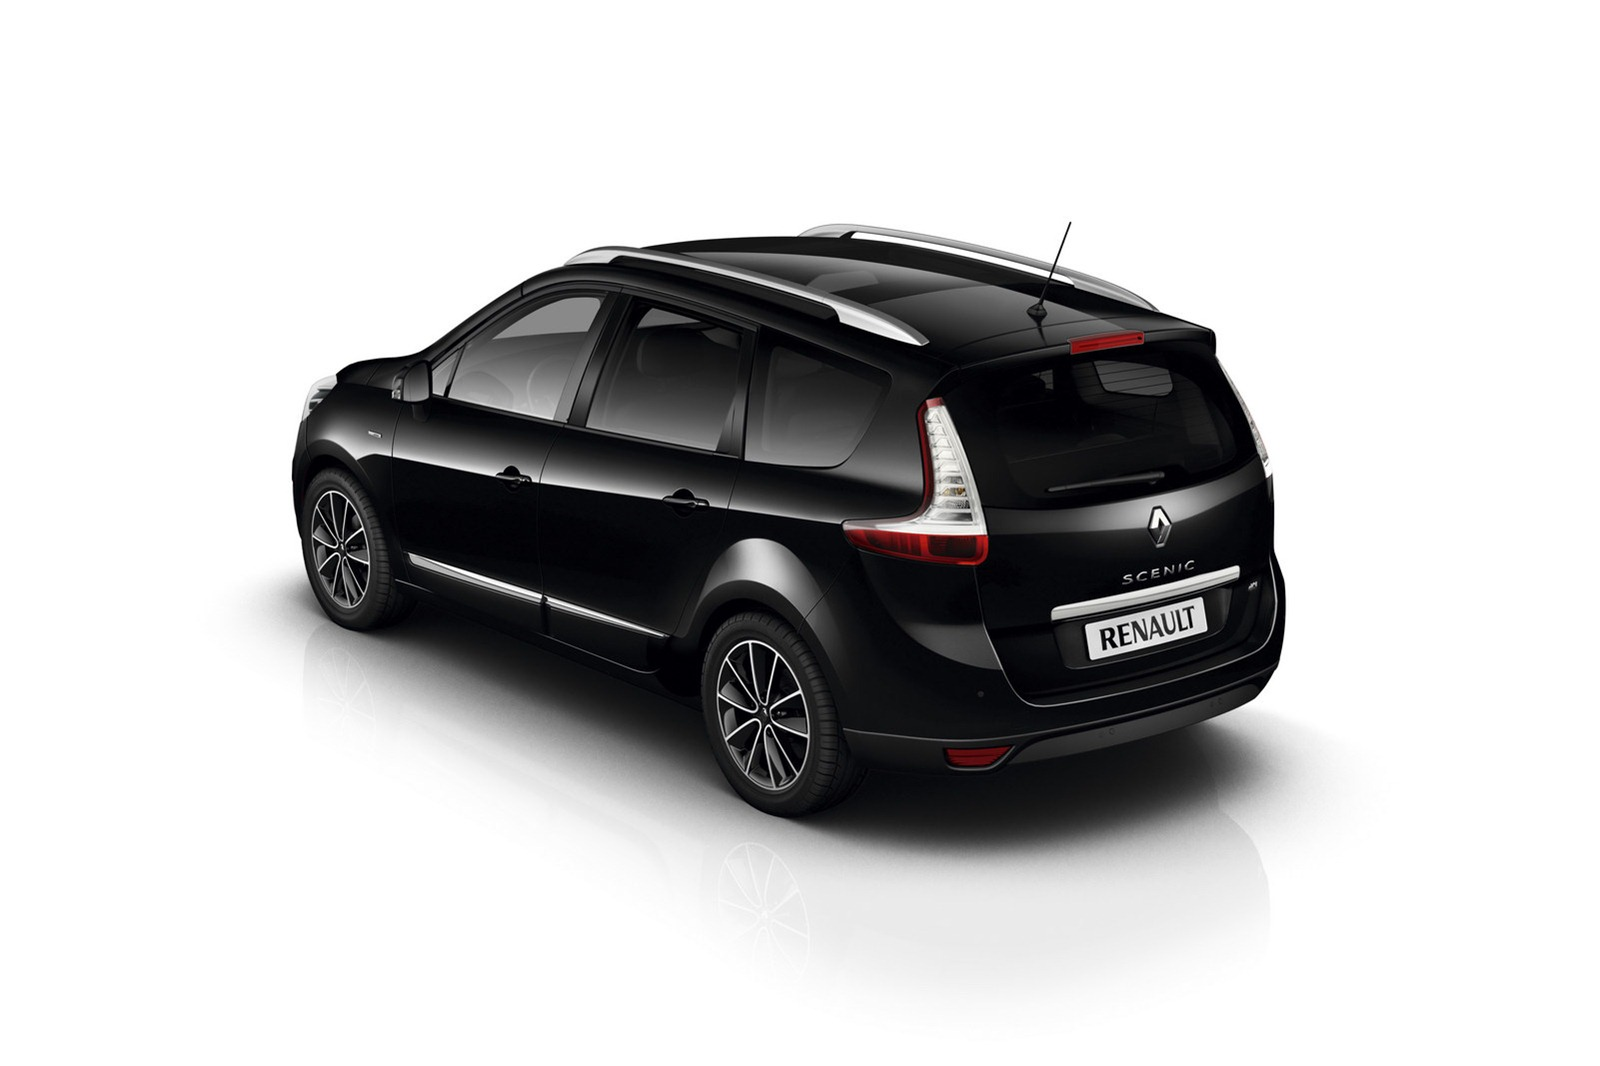 grand new avanza 1.5 g limited forum 2012 scenic and models of renault to be